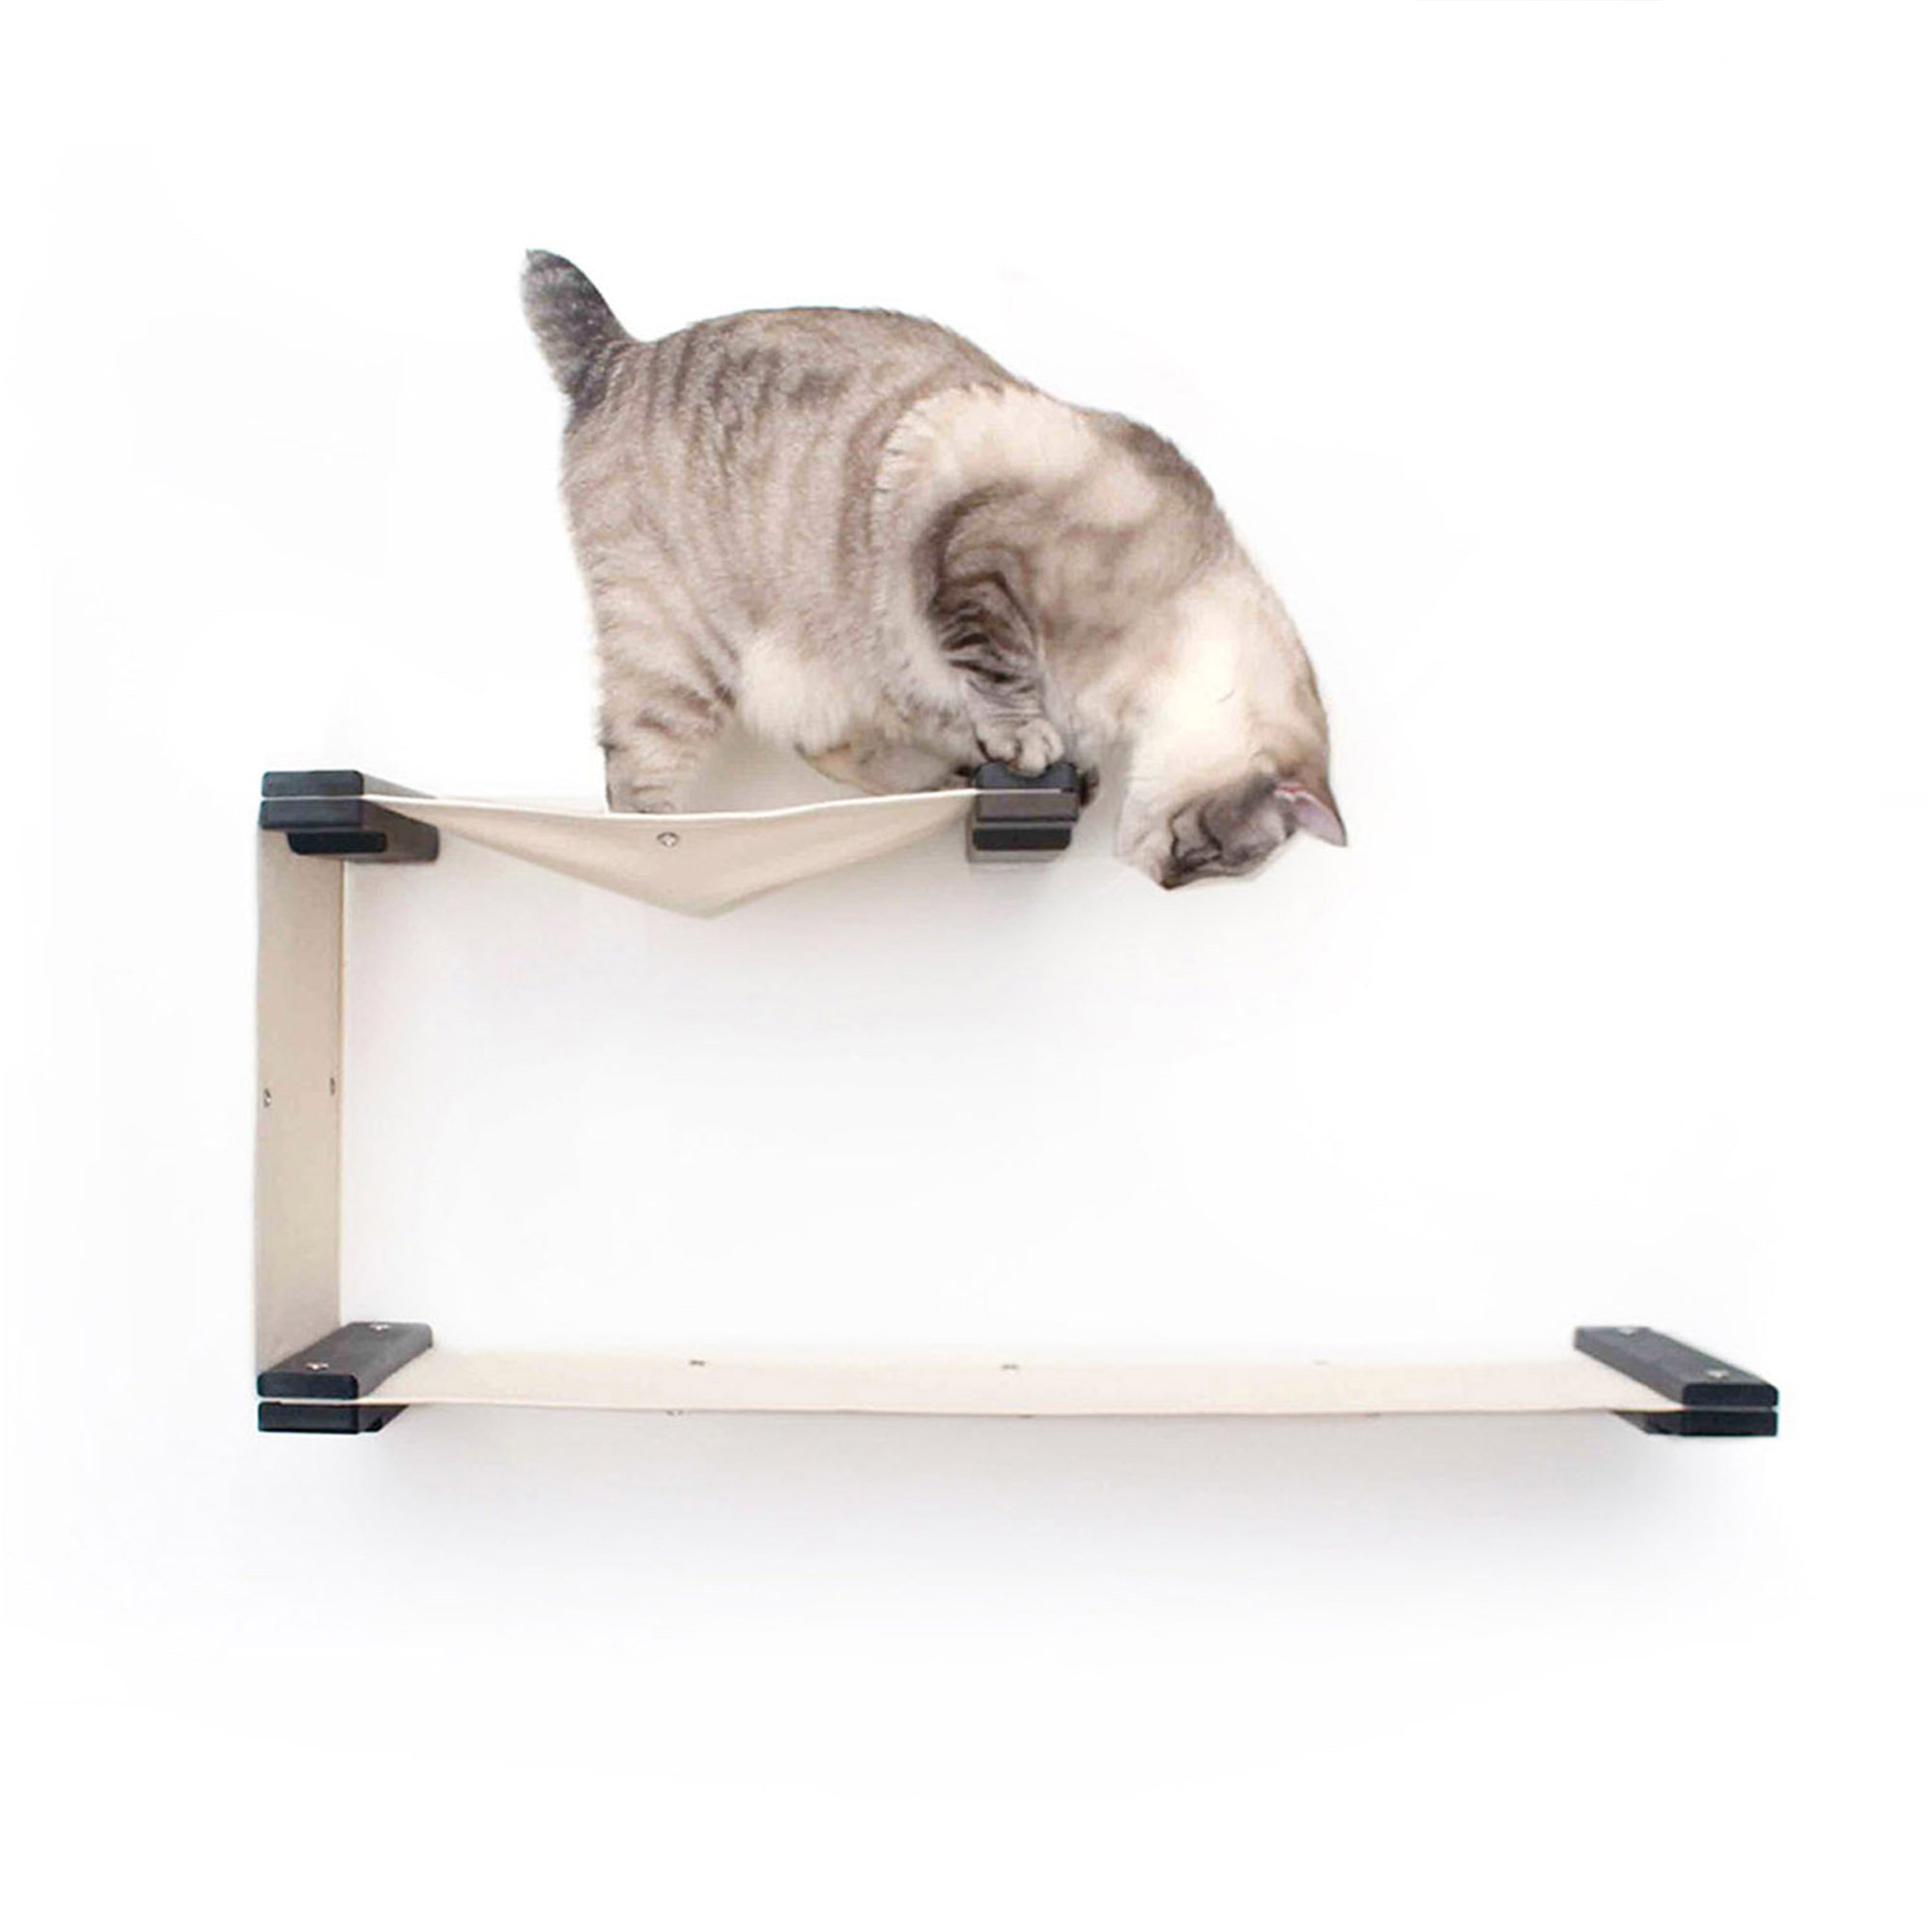 Catastrophicreations The Cat Mod Double Decker Hammocks For Cats In Onyx, 35.5 In W X 15.5 In H, 8 Lb